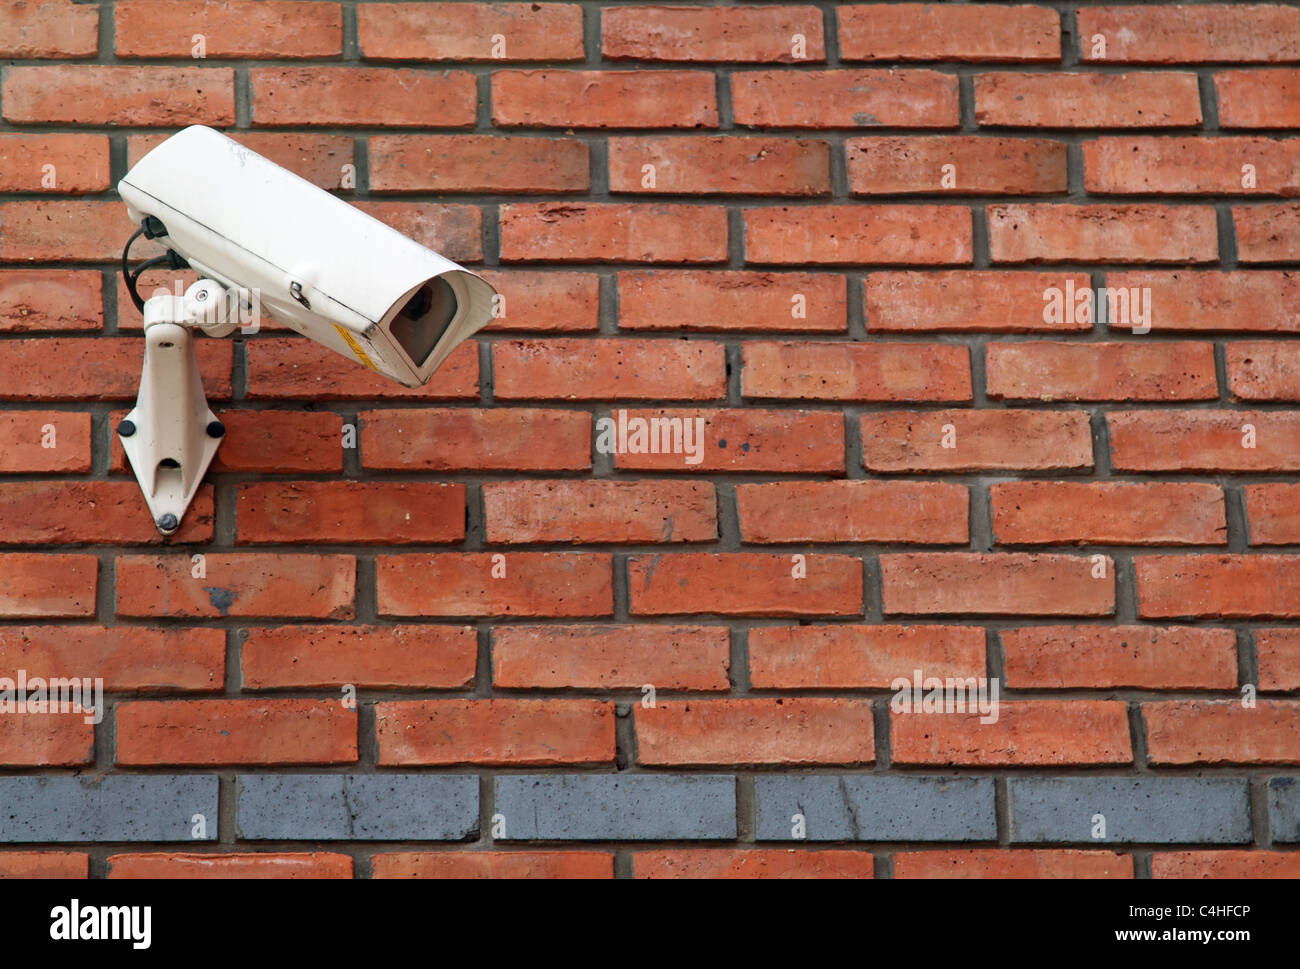 White Cctv Camera Mounted On A Red Brick Wall Stock Photo